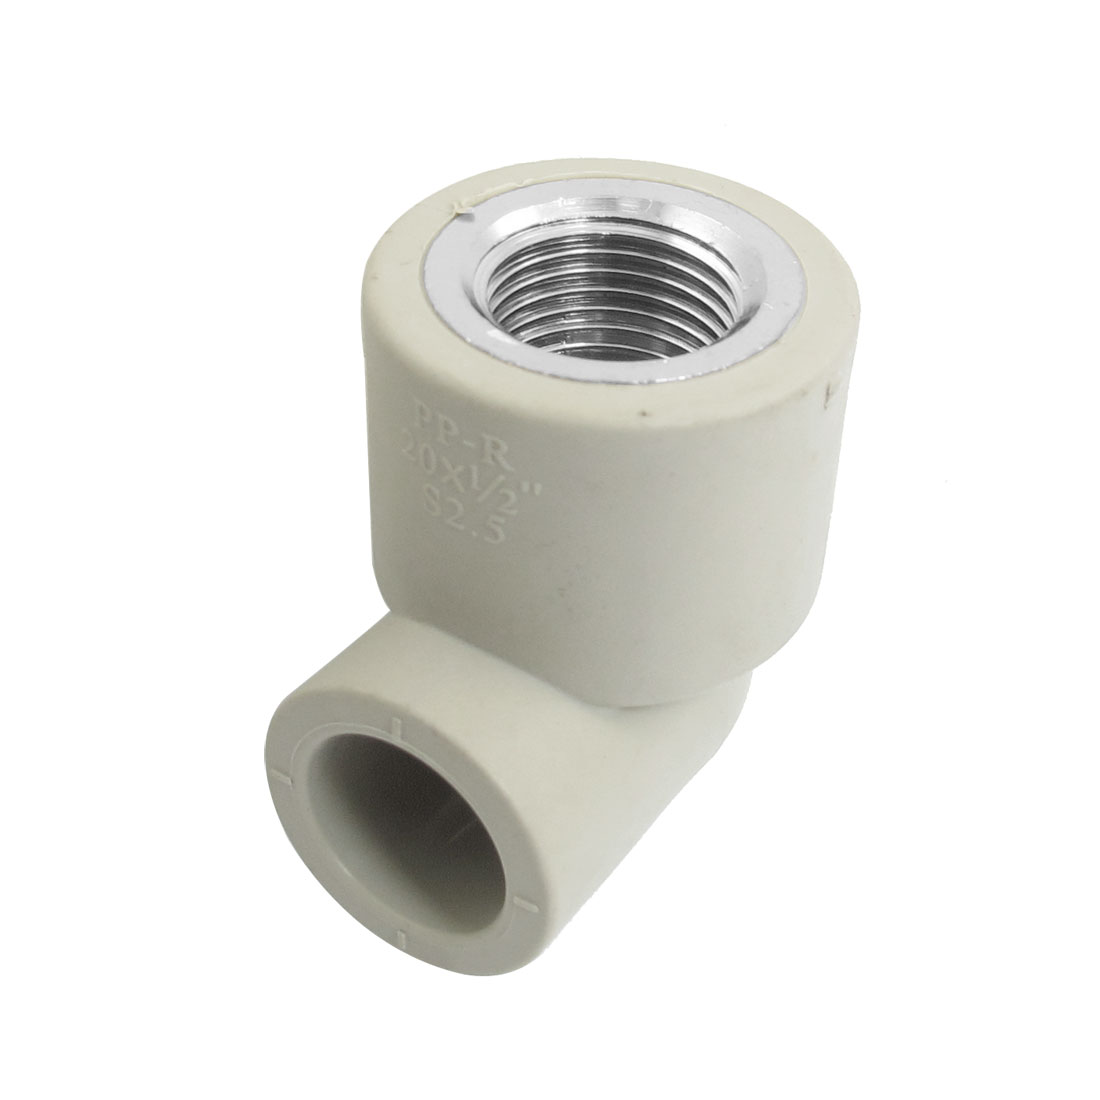 "PPR Pipe Fitting PT 1/2"" Female Thread 20mm Slip Elbow Connector"